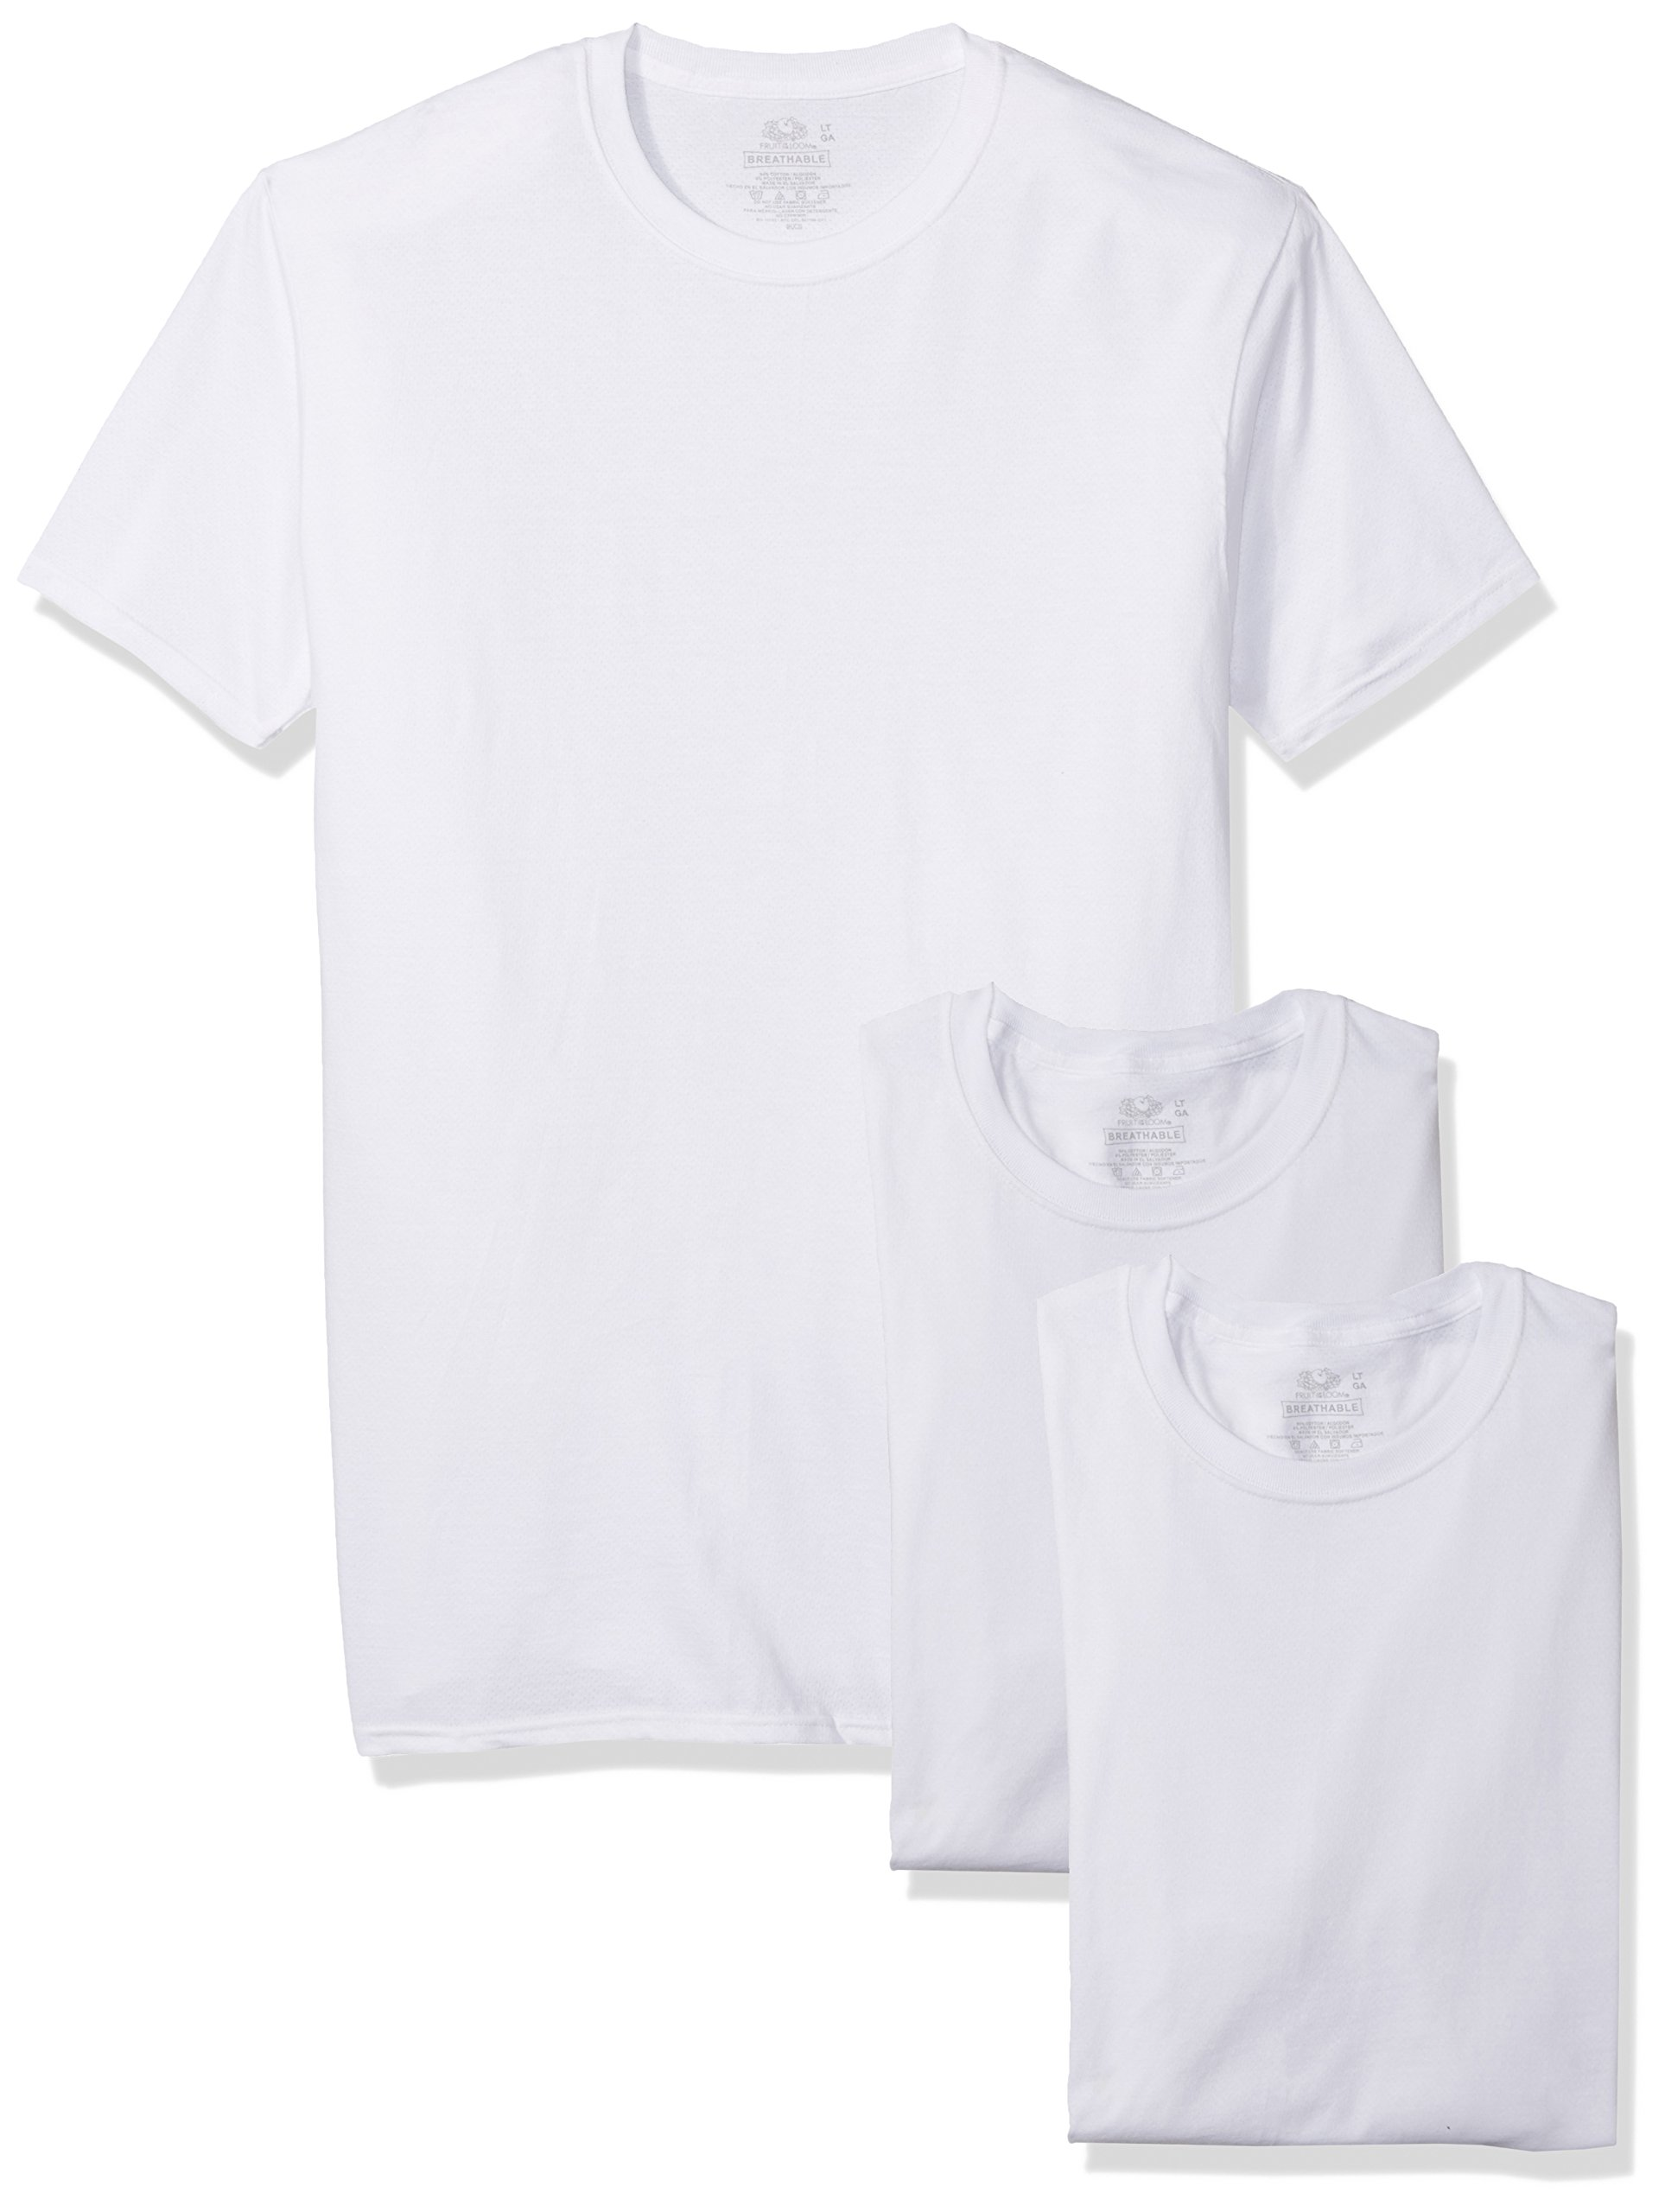 Fruit of the Loom Men's 3-Pack Breathable Crew T-Shirt, White Ice - Tall Sizes, 2X-Large